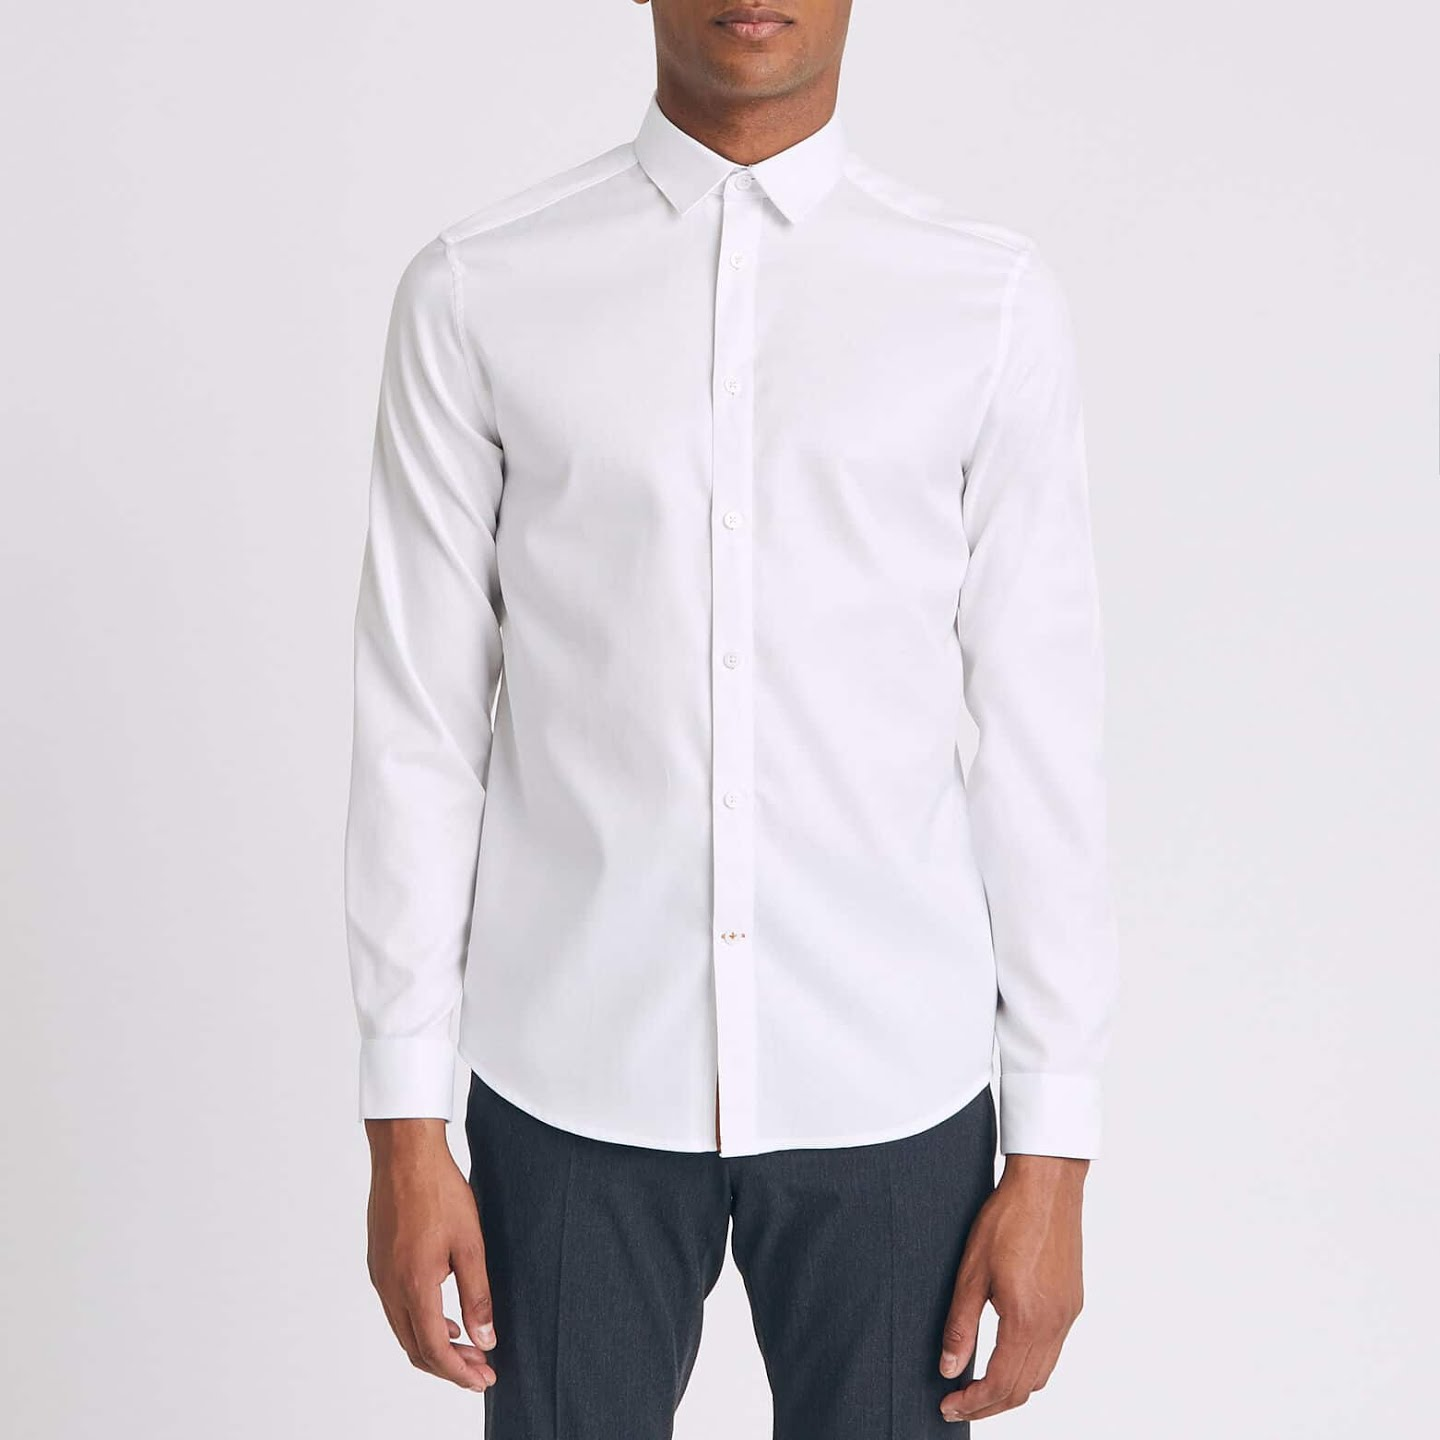 Soldes Jules - chemise blanche